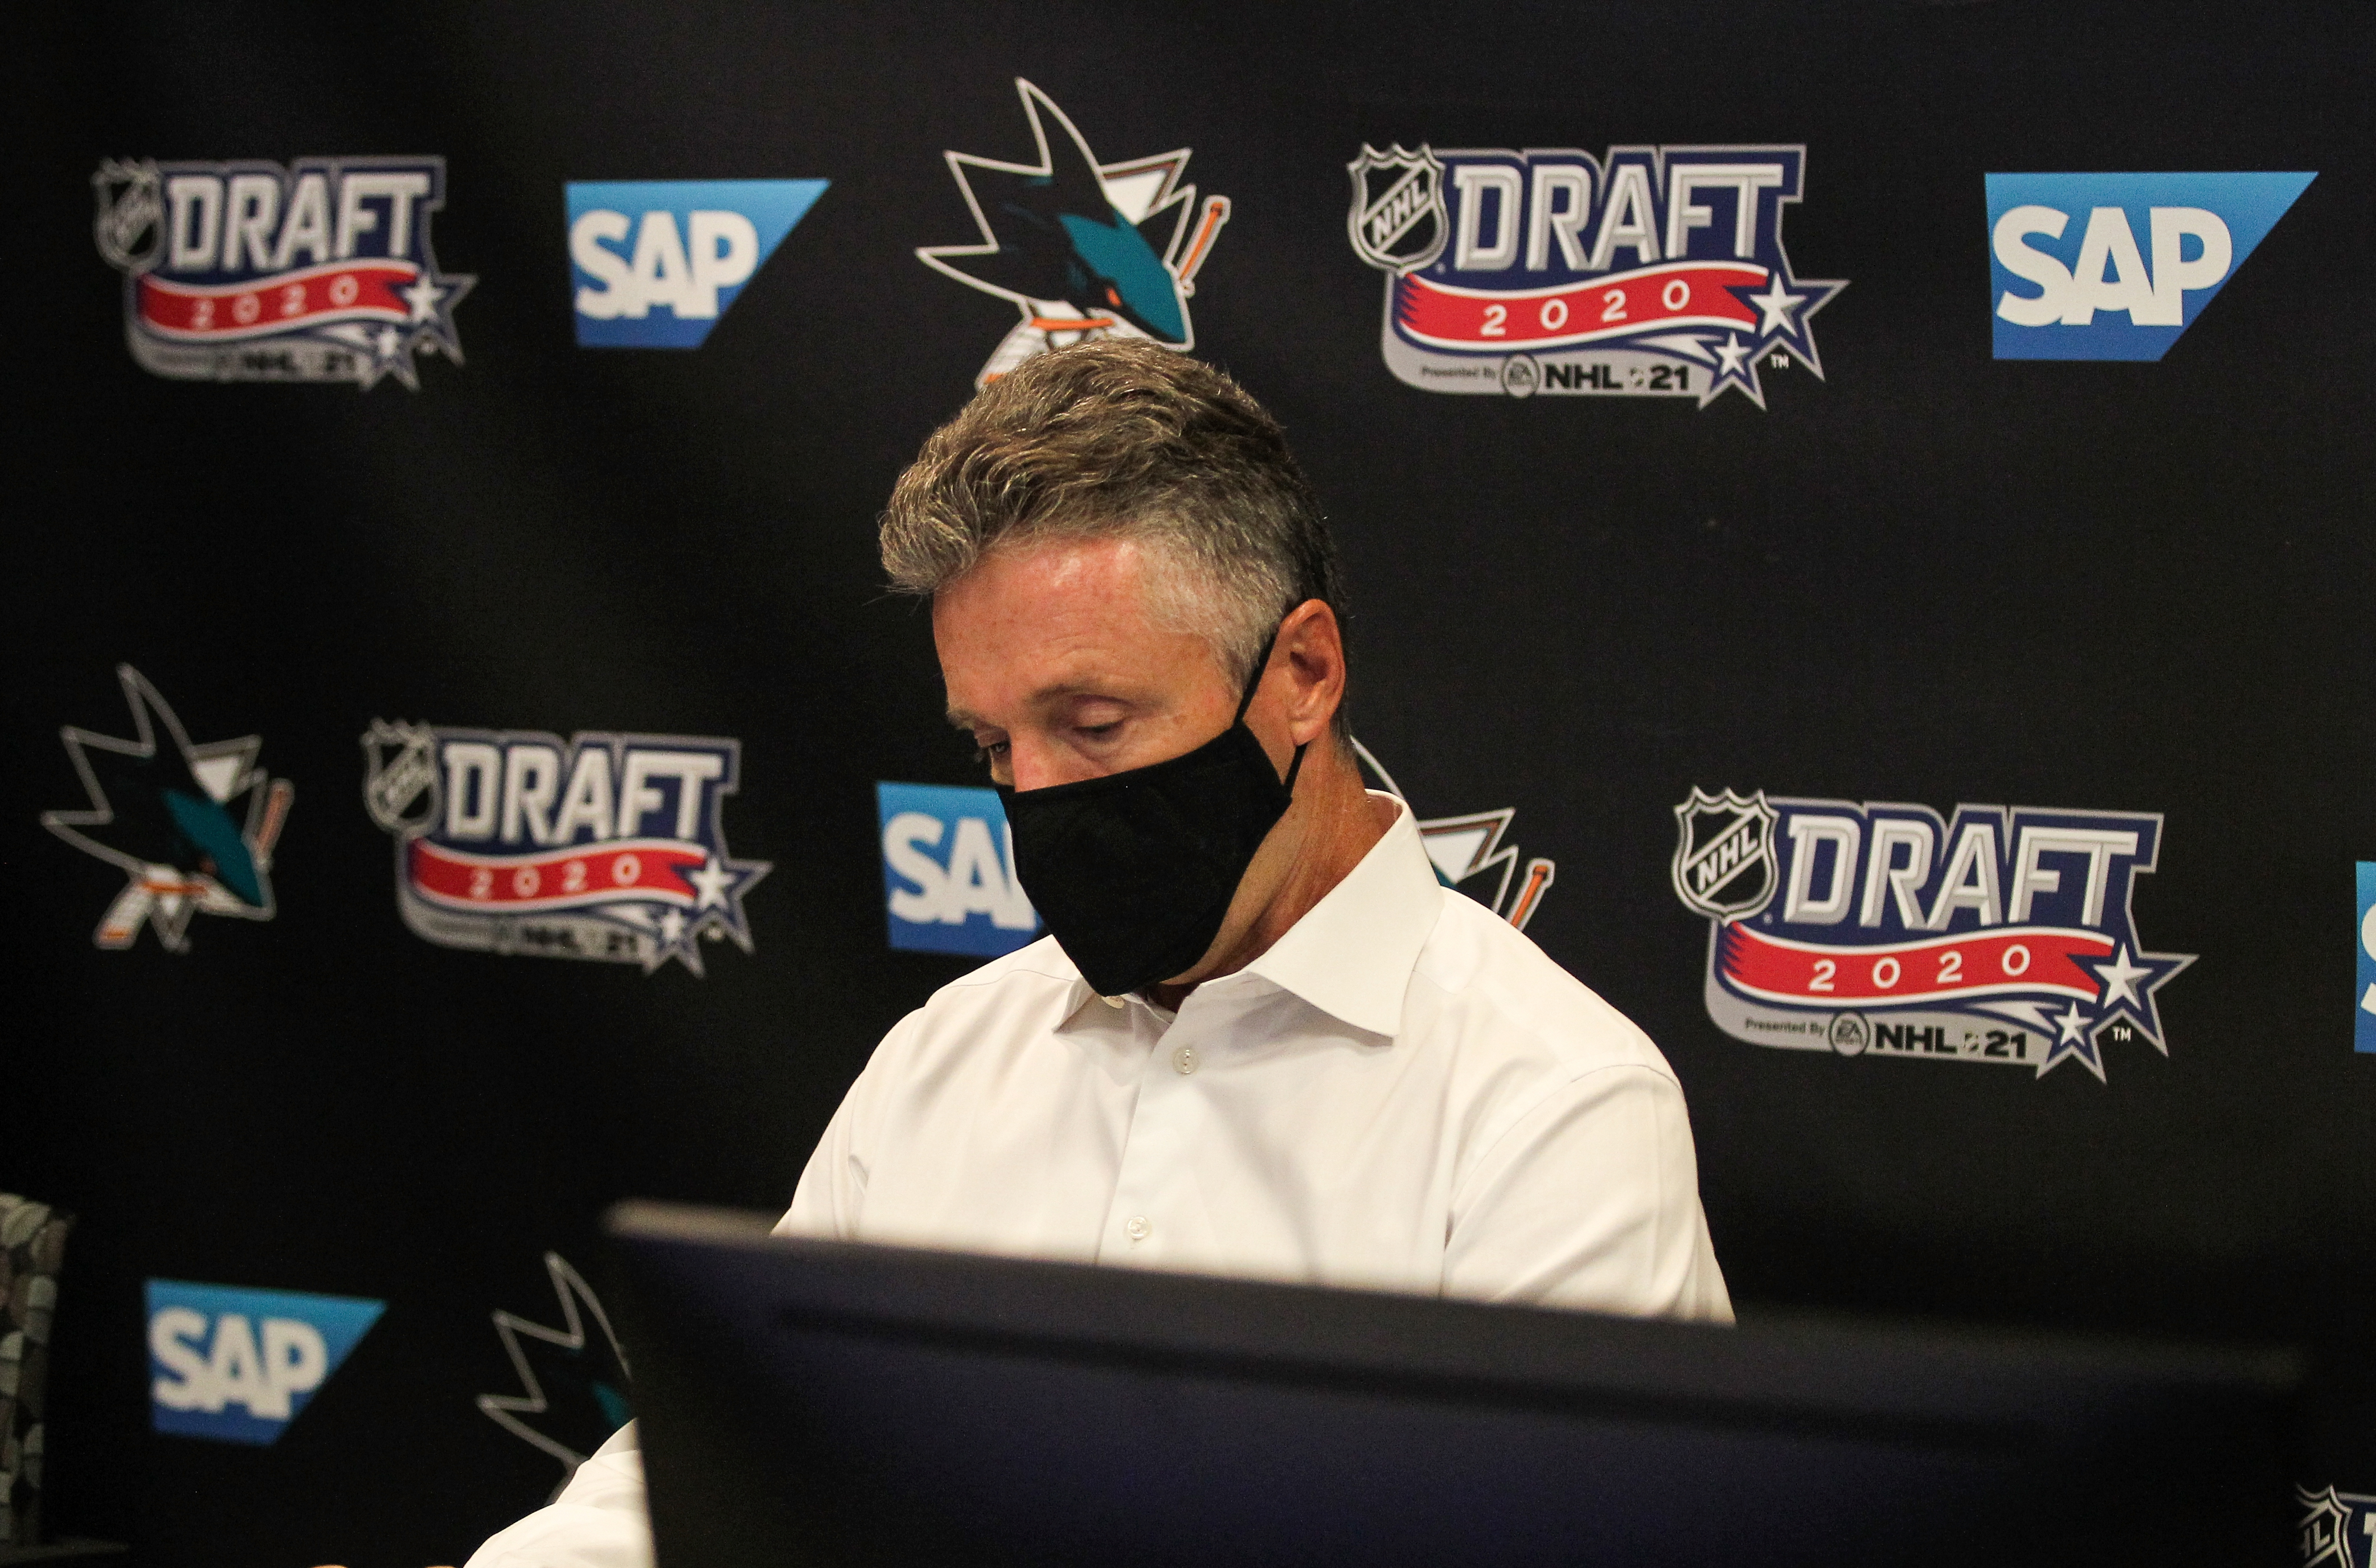 SAN JOSE, CA - OCTOBER 06: San Jose Sharks General Manager Doug Wilson prepares before Round One of the 2020 NHL Draft on October 6, 2020 at SAP Center in San Jose, California. The 2020 NHL Draft was held virtually due to the ongoing Coronavirus pandemic.